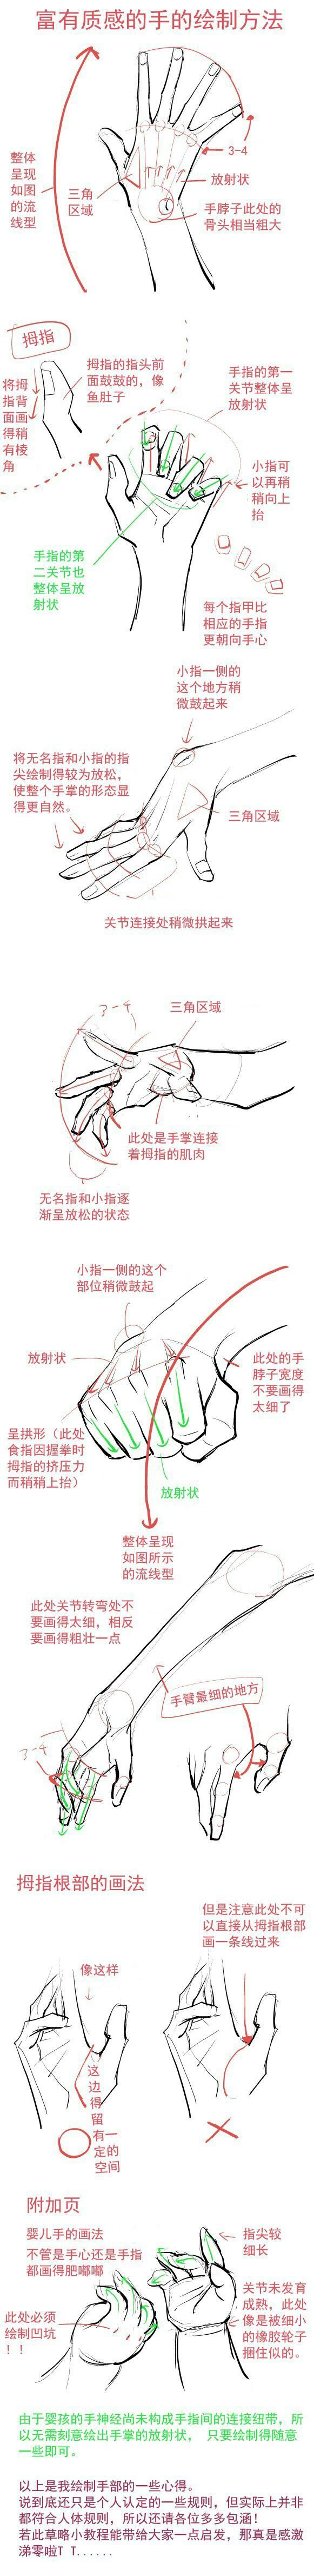 Hand movement references in different perspectives